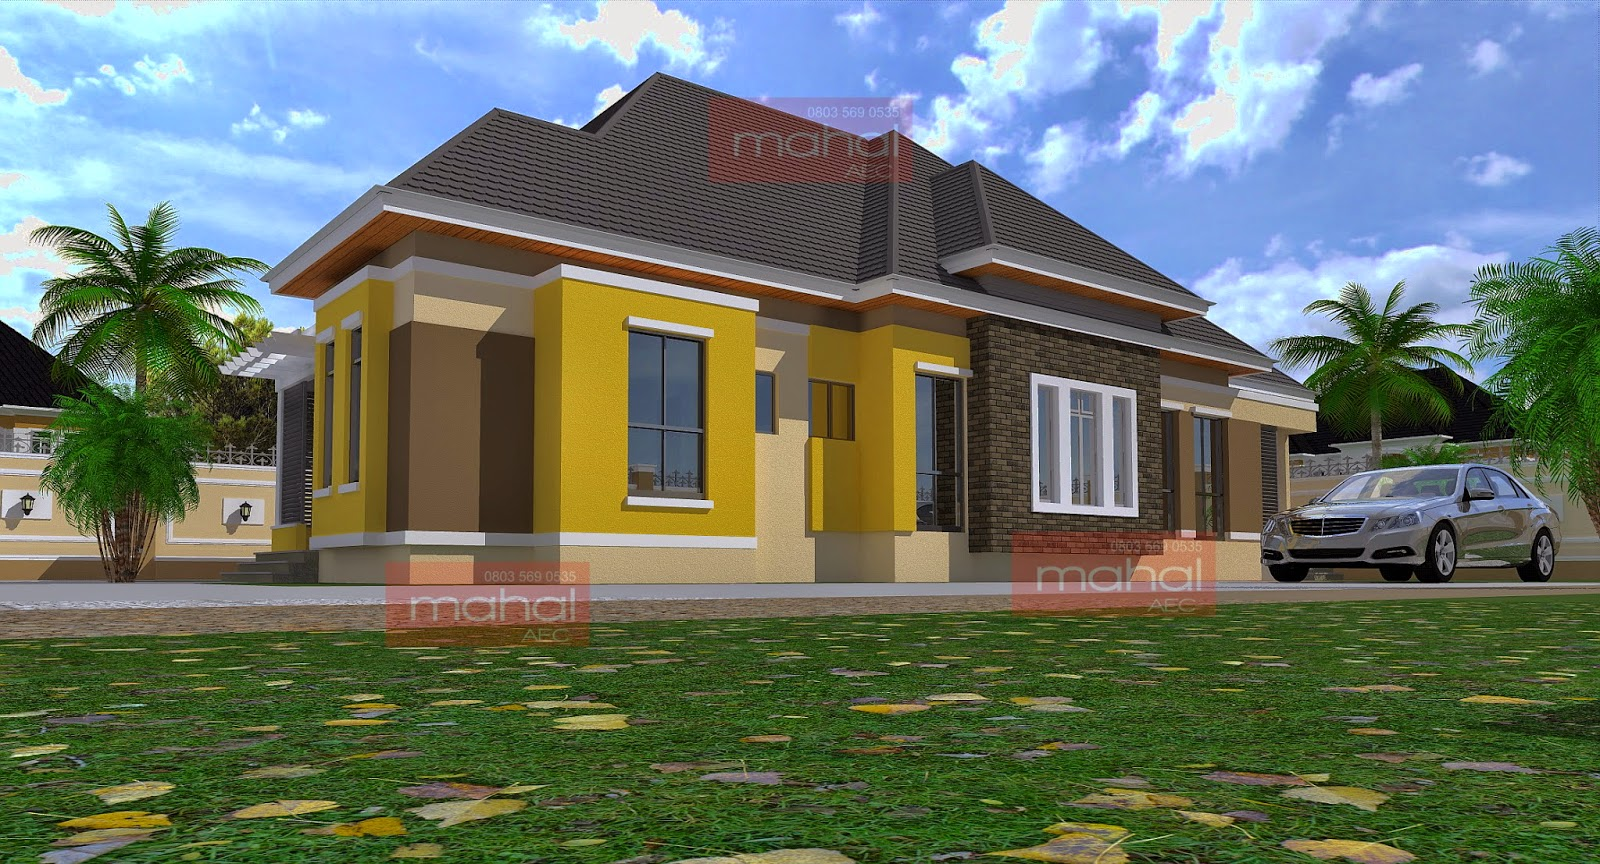 Bungalow Houses In Nigeria Joy Studio Design Gallery